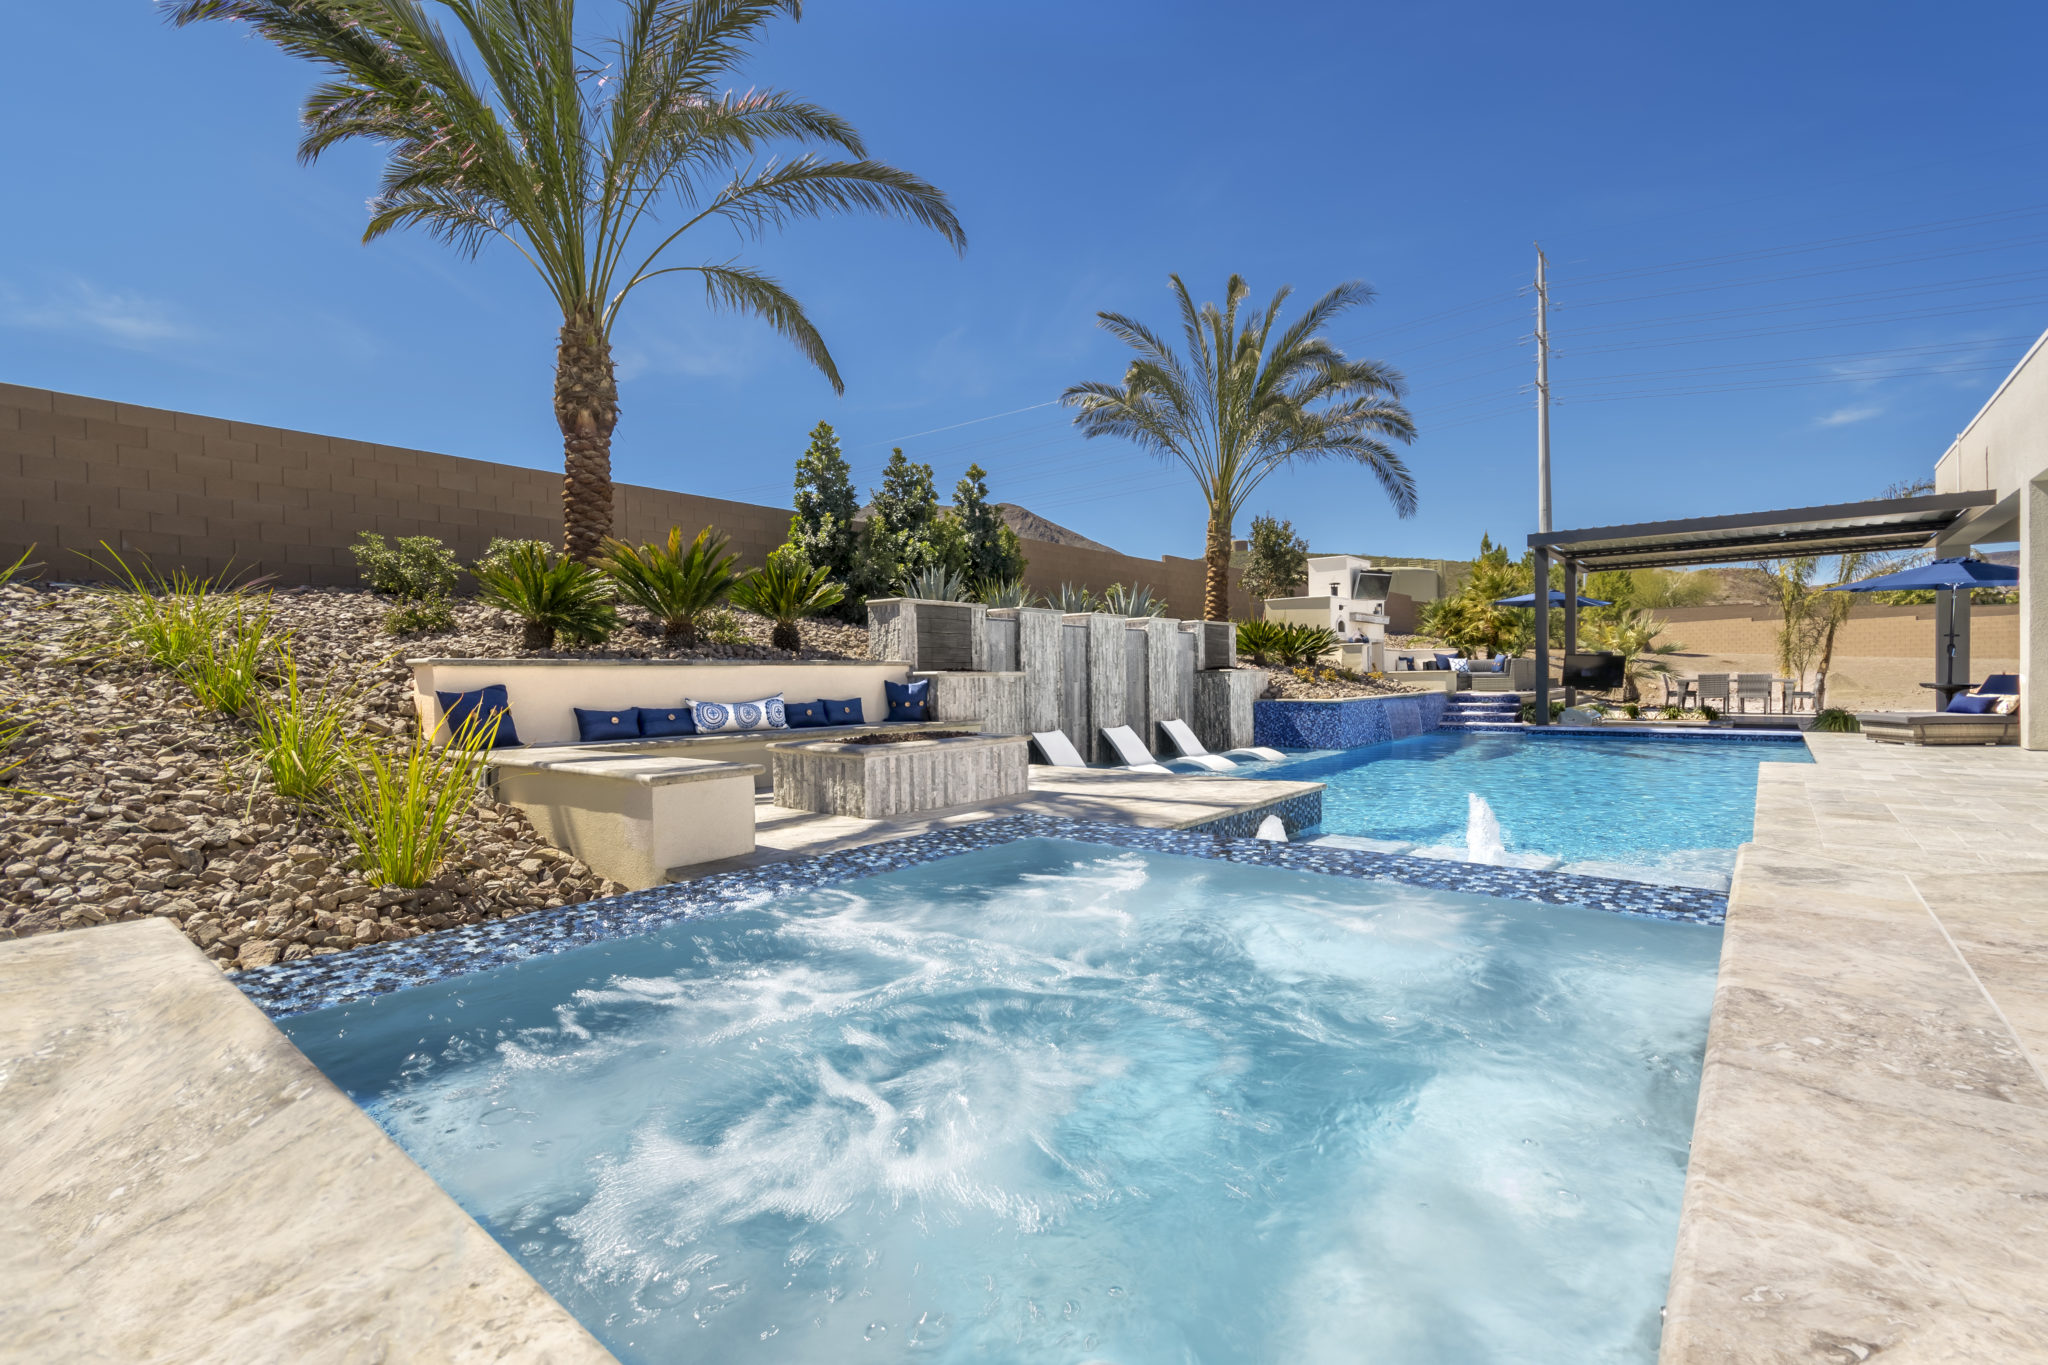 Austin Look Into Luxury Pools Designs For Your Backyard